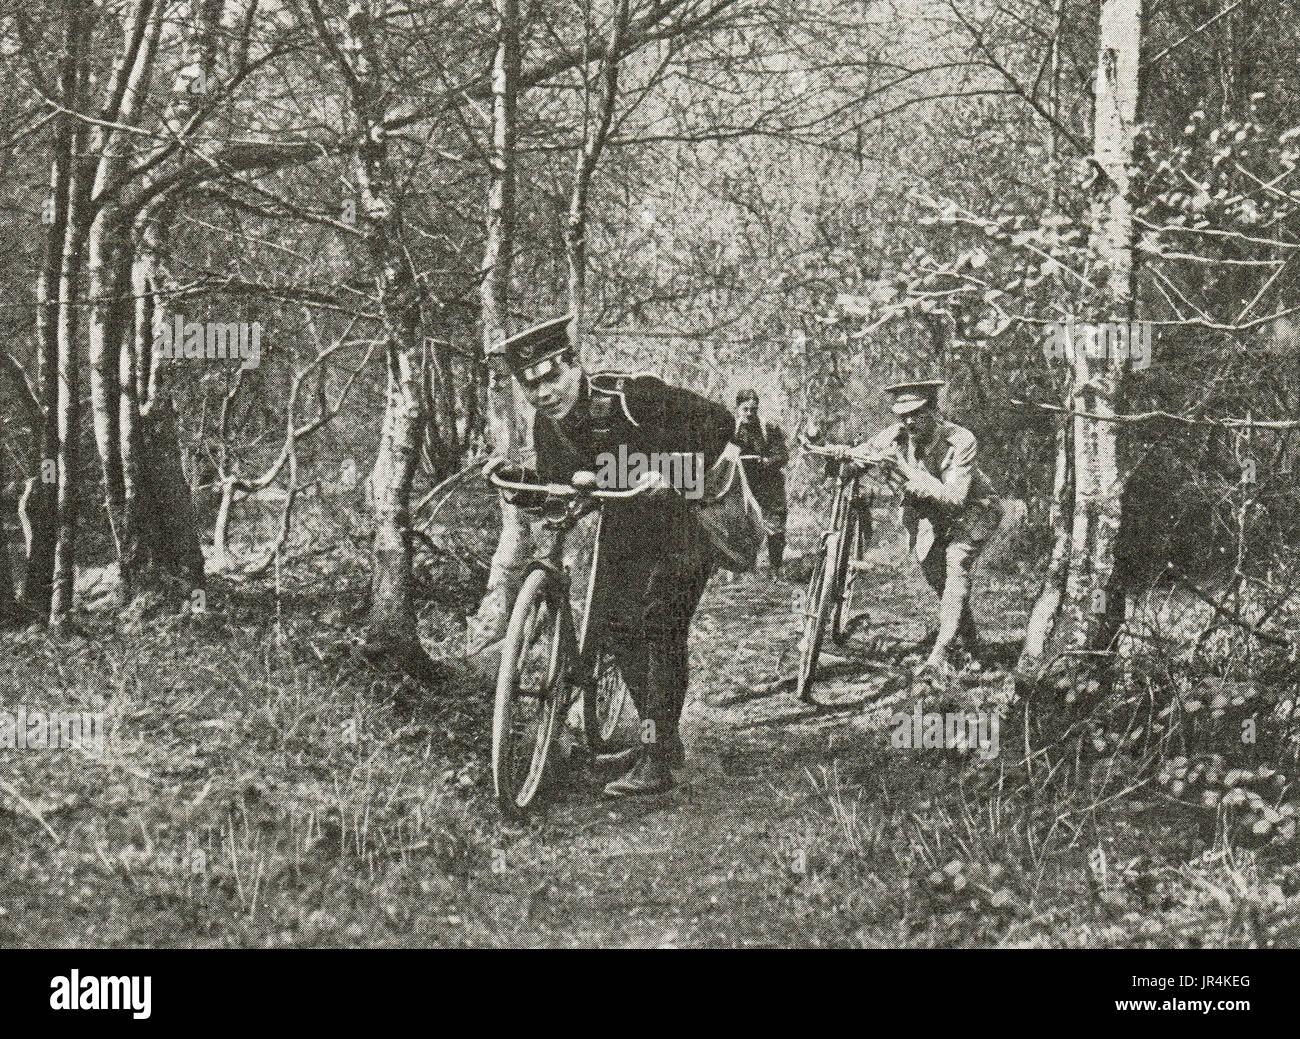 Cyclist volunteers on scouting duty, WW1 - Stock Image